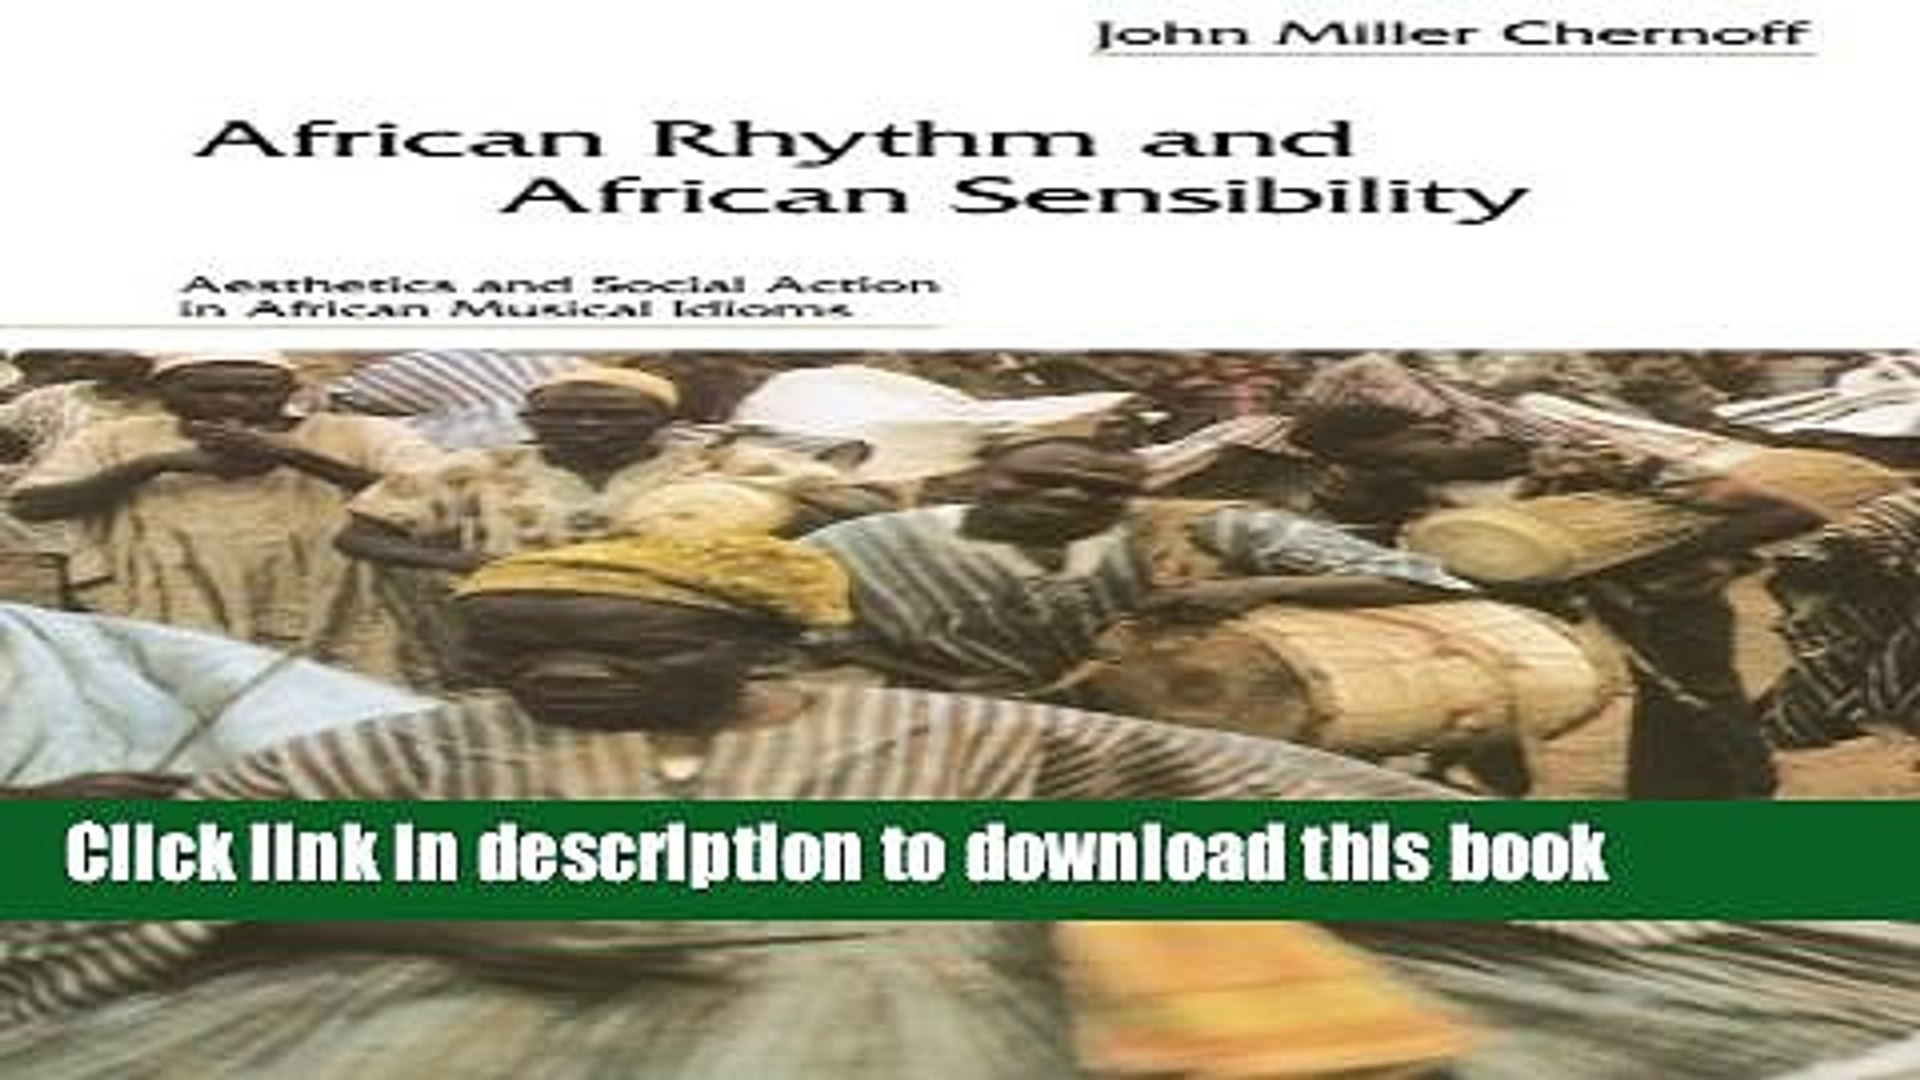 [Popular] African Rhythm and African Sensibility: Aesthetics and Social Action in African Musical